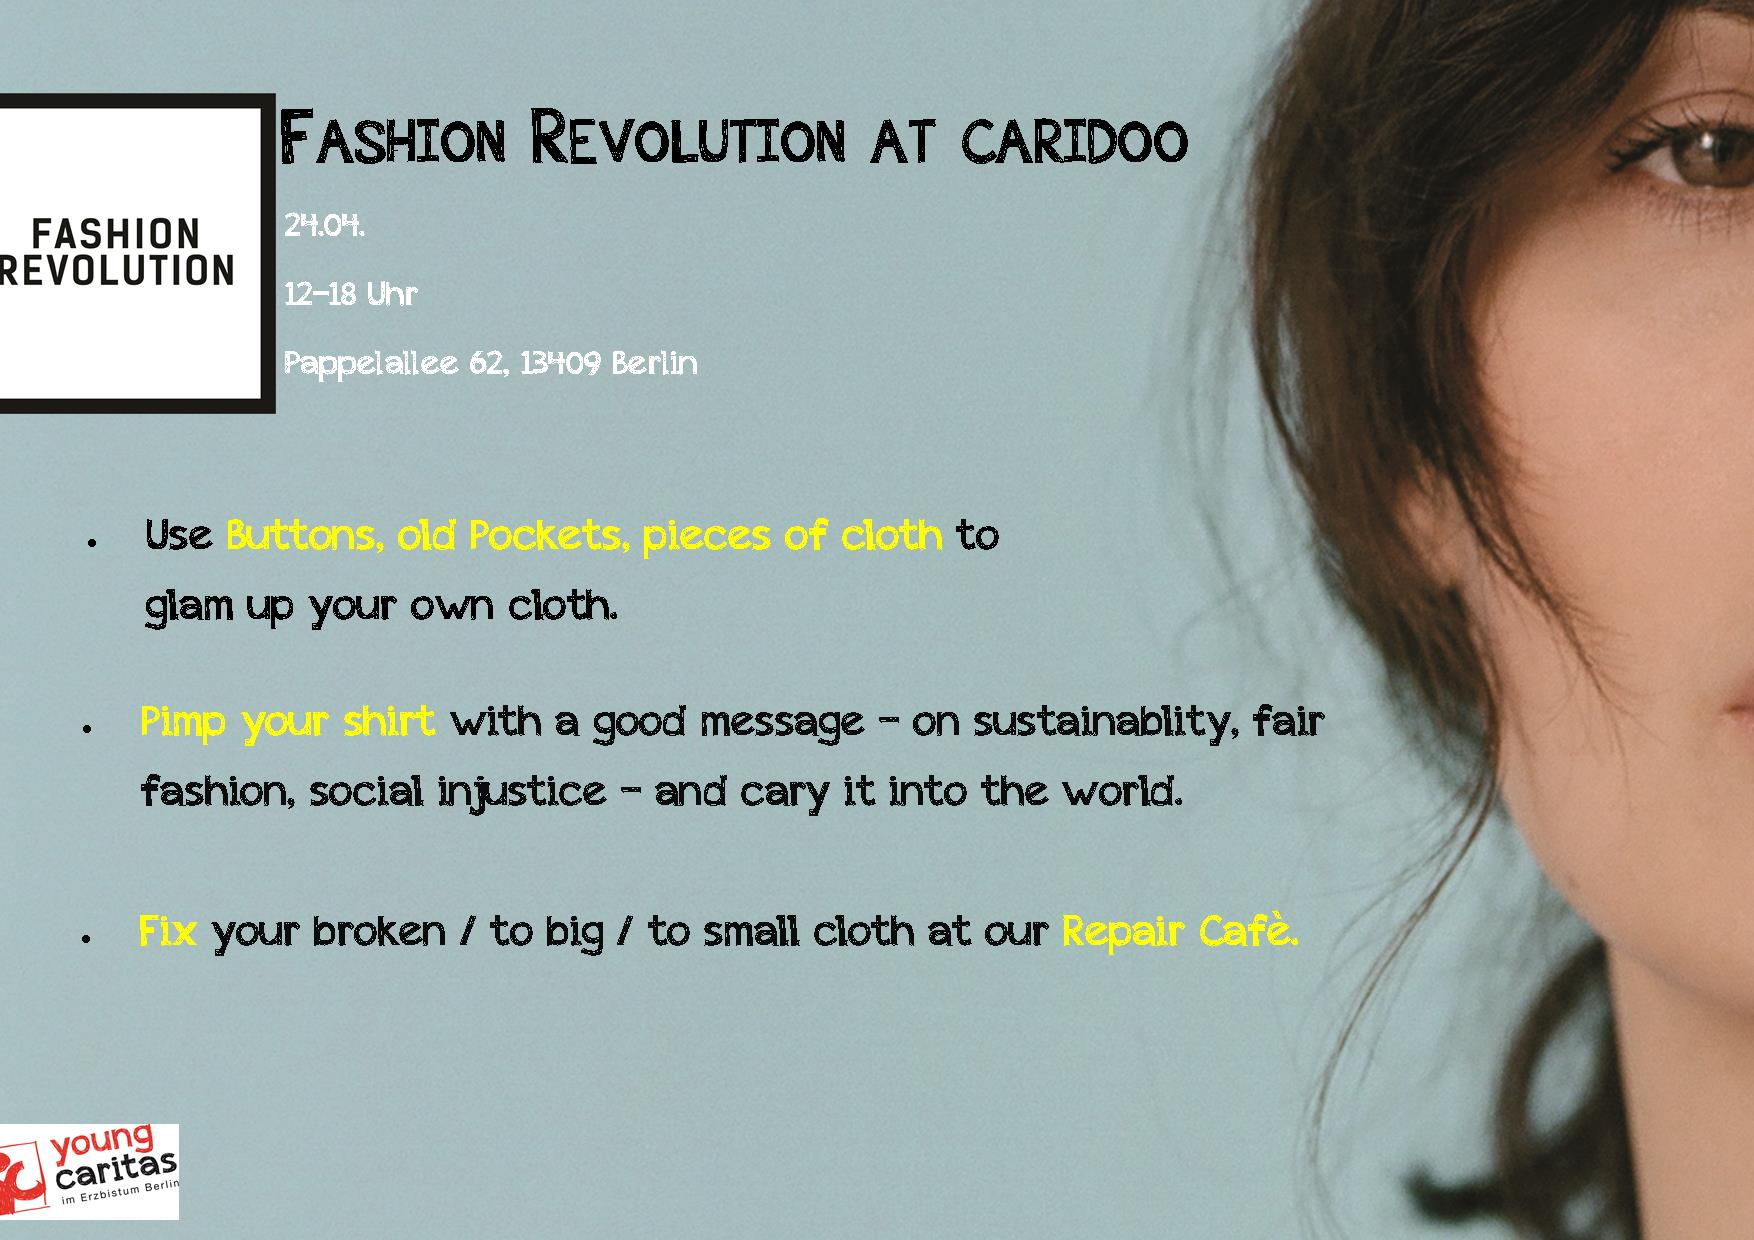 Fashion Revolution Day at caridoo